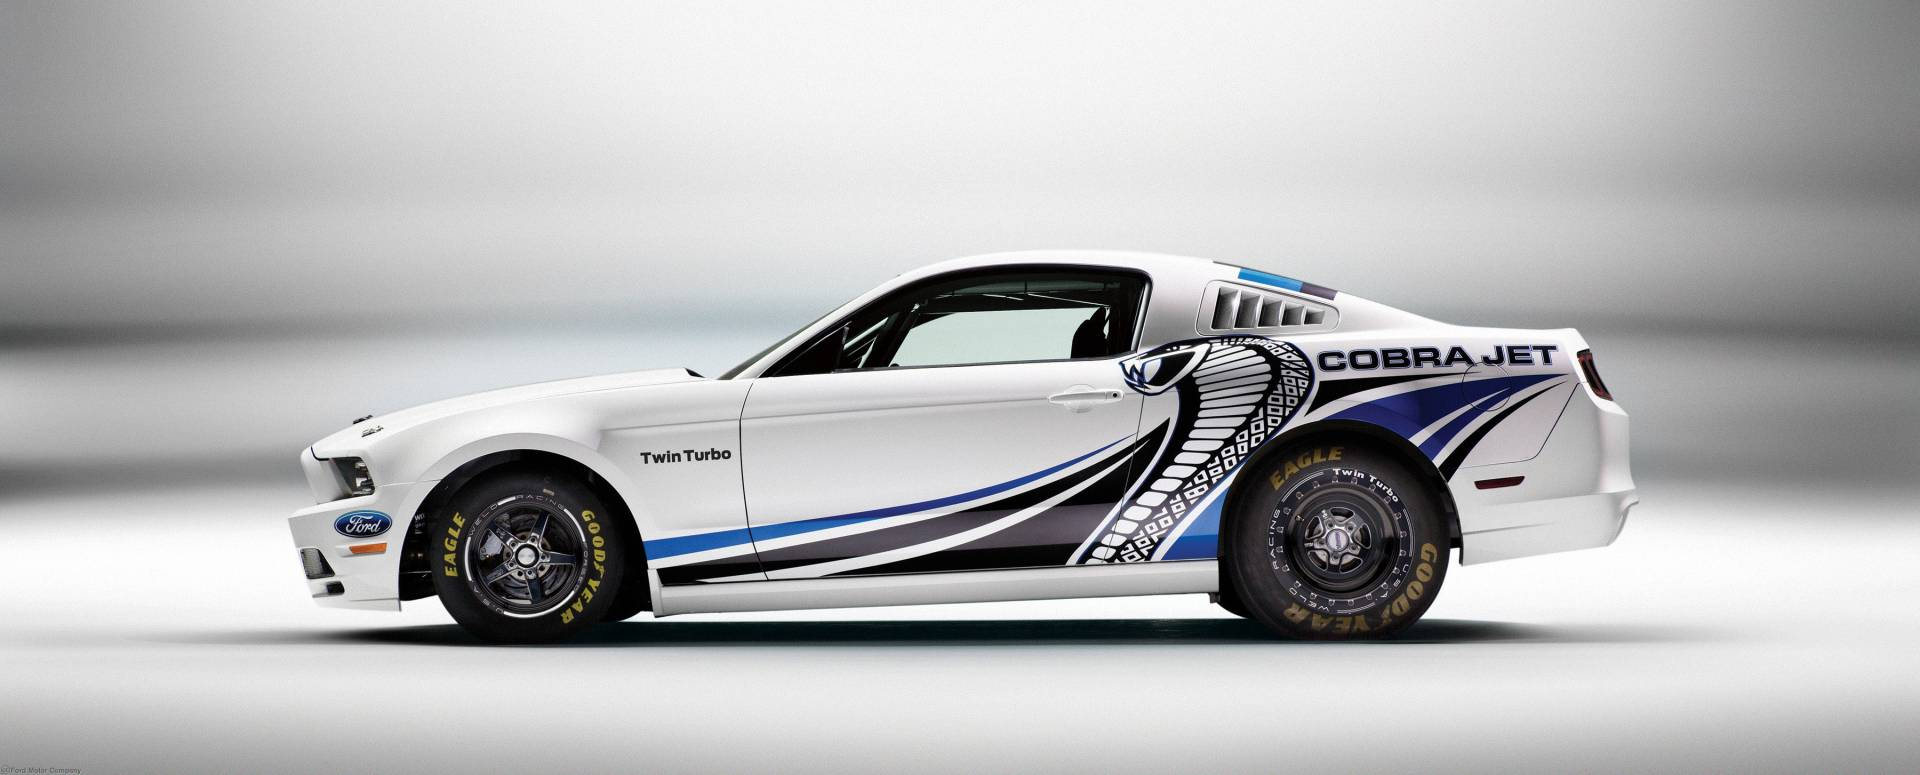 2013 Ford Mustang Cobra Jet Twin-Turbo Concept News and Information ...